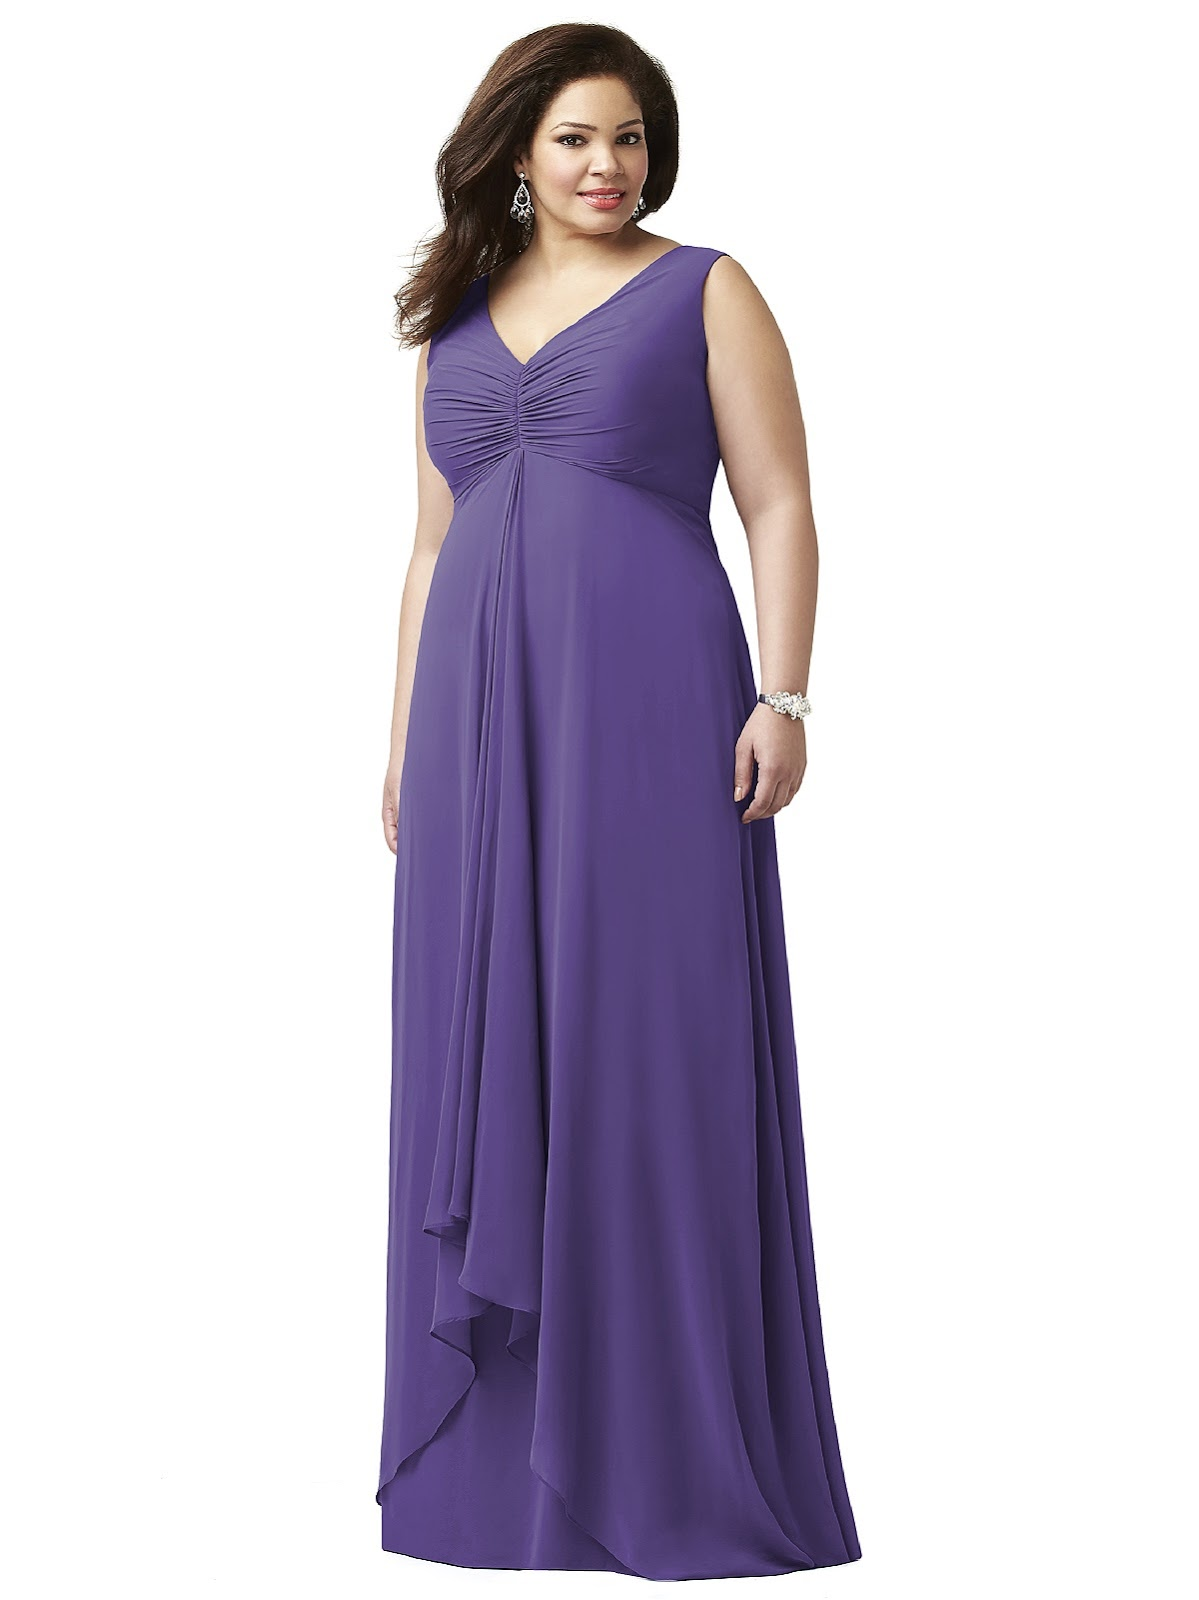 Why You Should Consider Purple Plus Size Bridesmaid ...